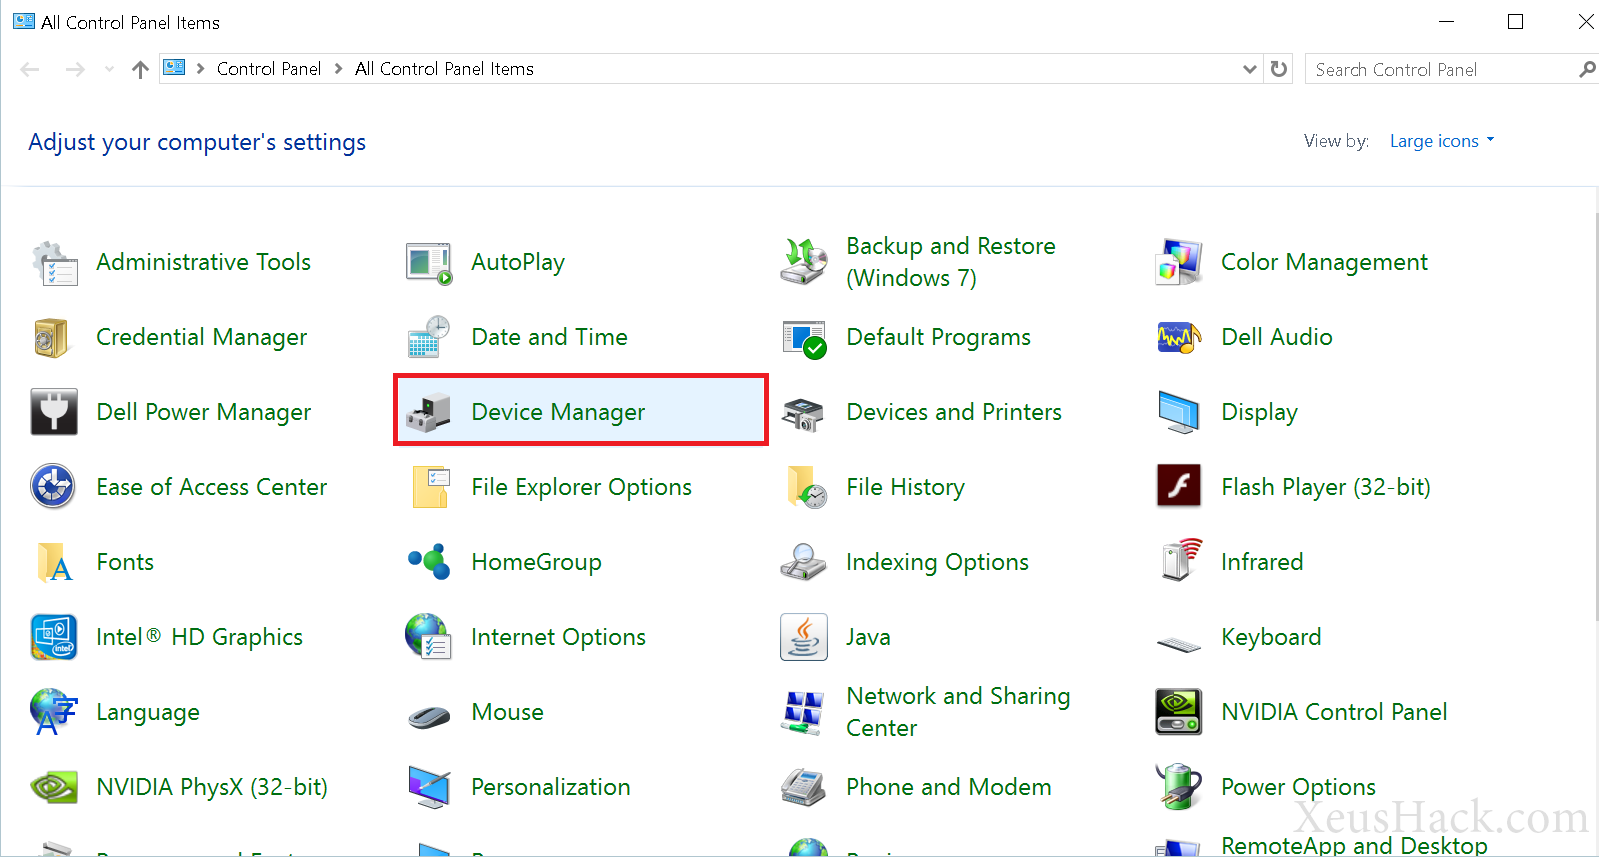 Open device manager from the control panel